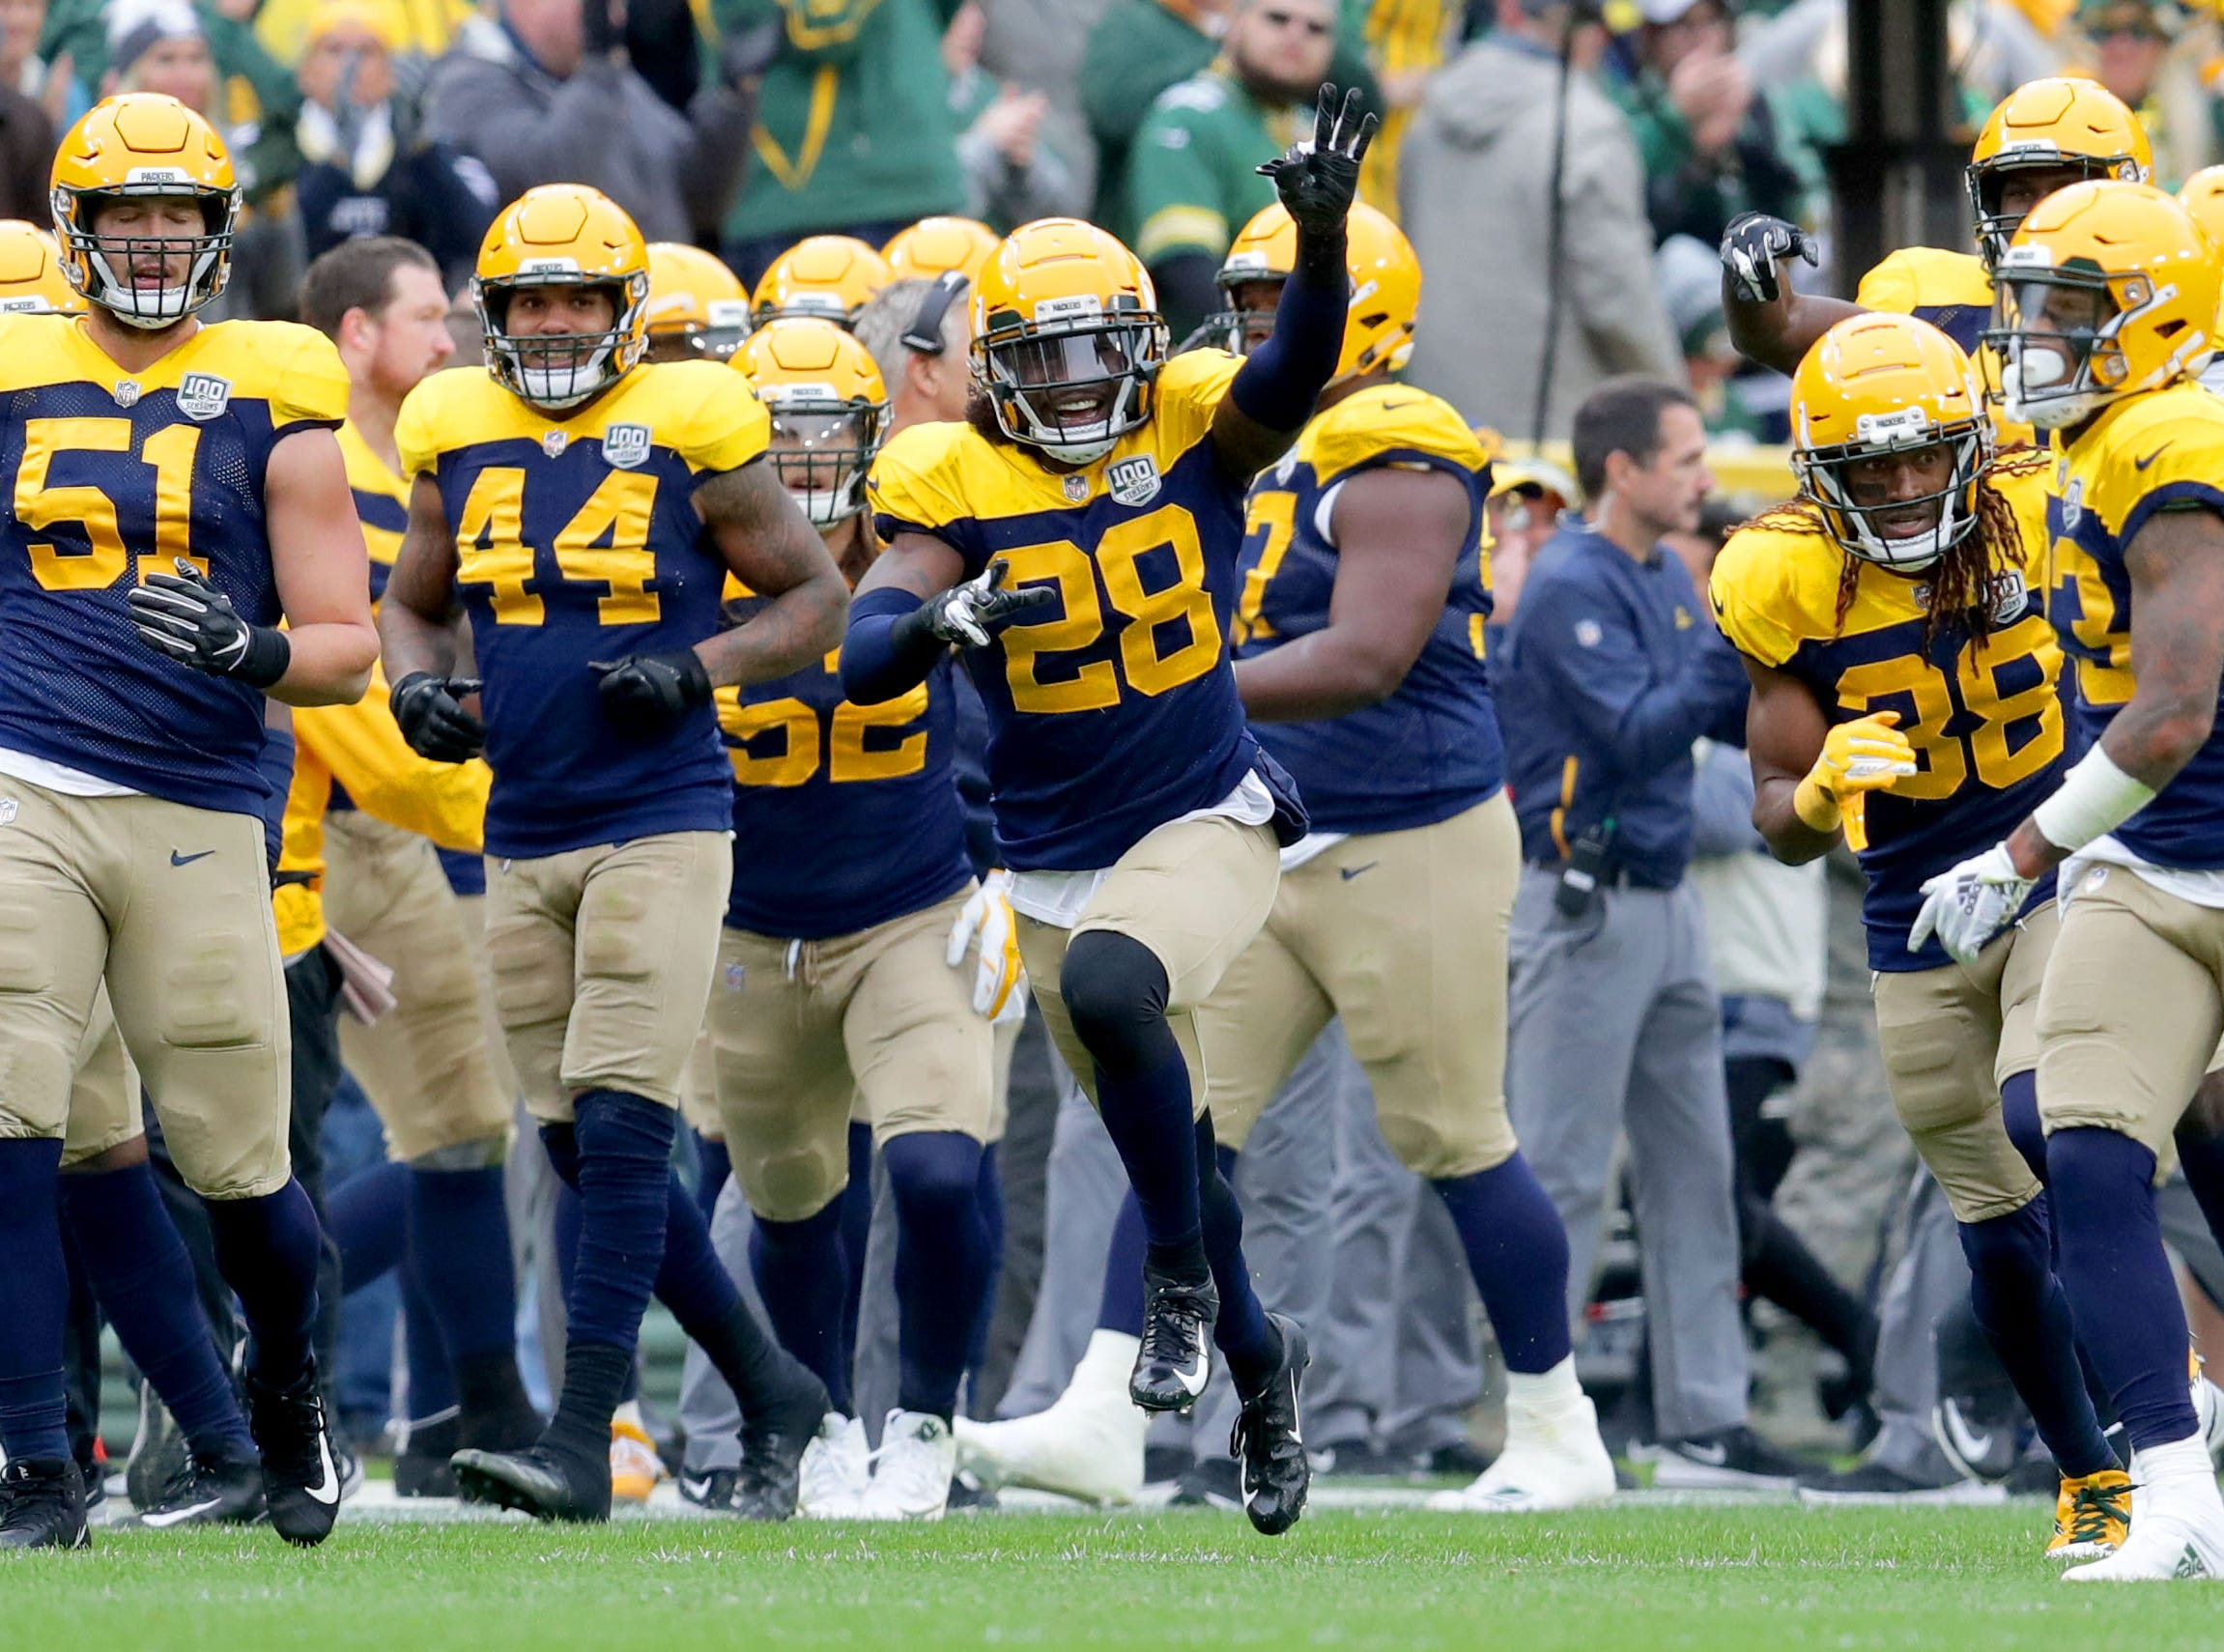 The Green Bay Packers defense celebrates an interception by Green Bay Packers cornerback Jaire Alexander (23) during the second quarter of the Green Bay Packers game against the Buffalo Bills at Lambeau Field in Green Bay, Wis. on Sunday, September 30, 2018. Mike De Sisti /USA TODAY NETWORK-Wisconsin